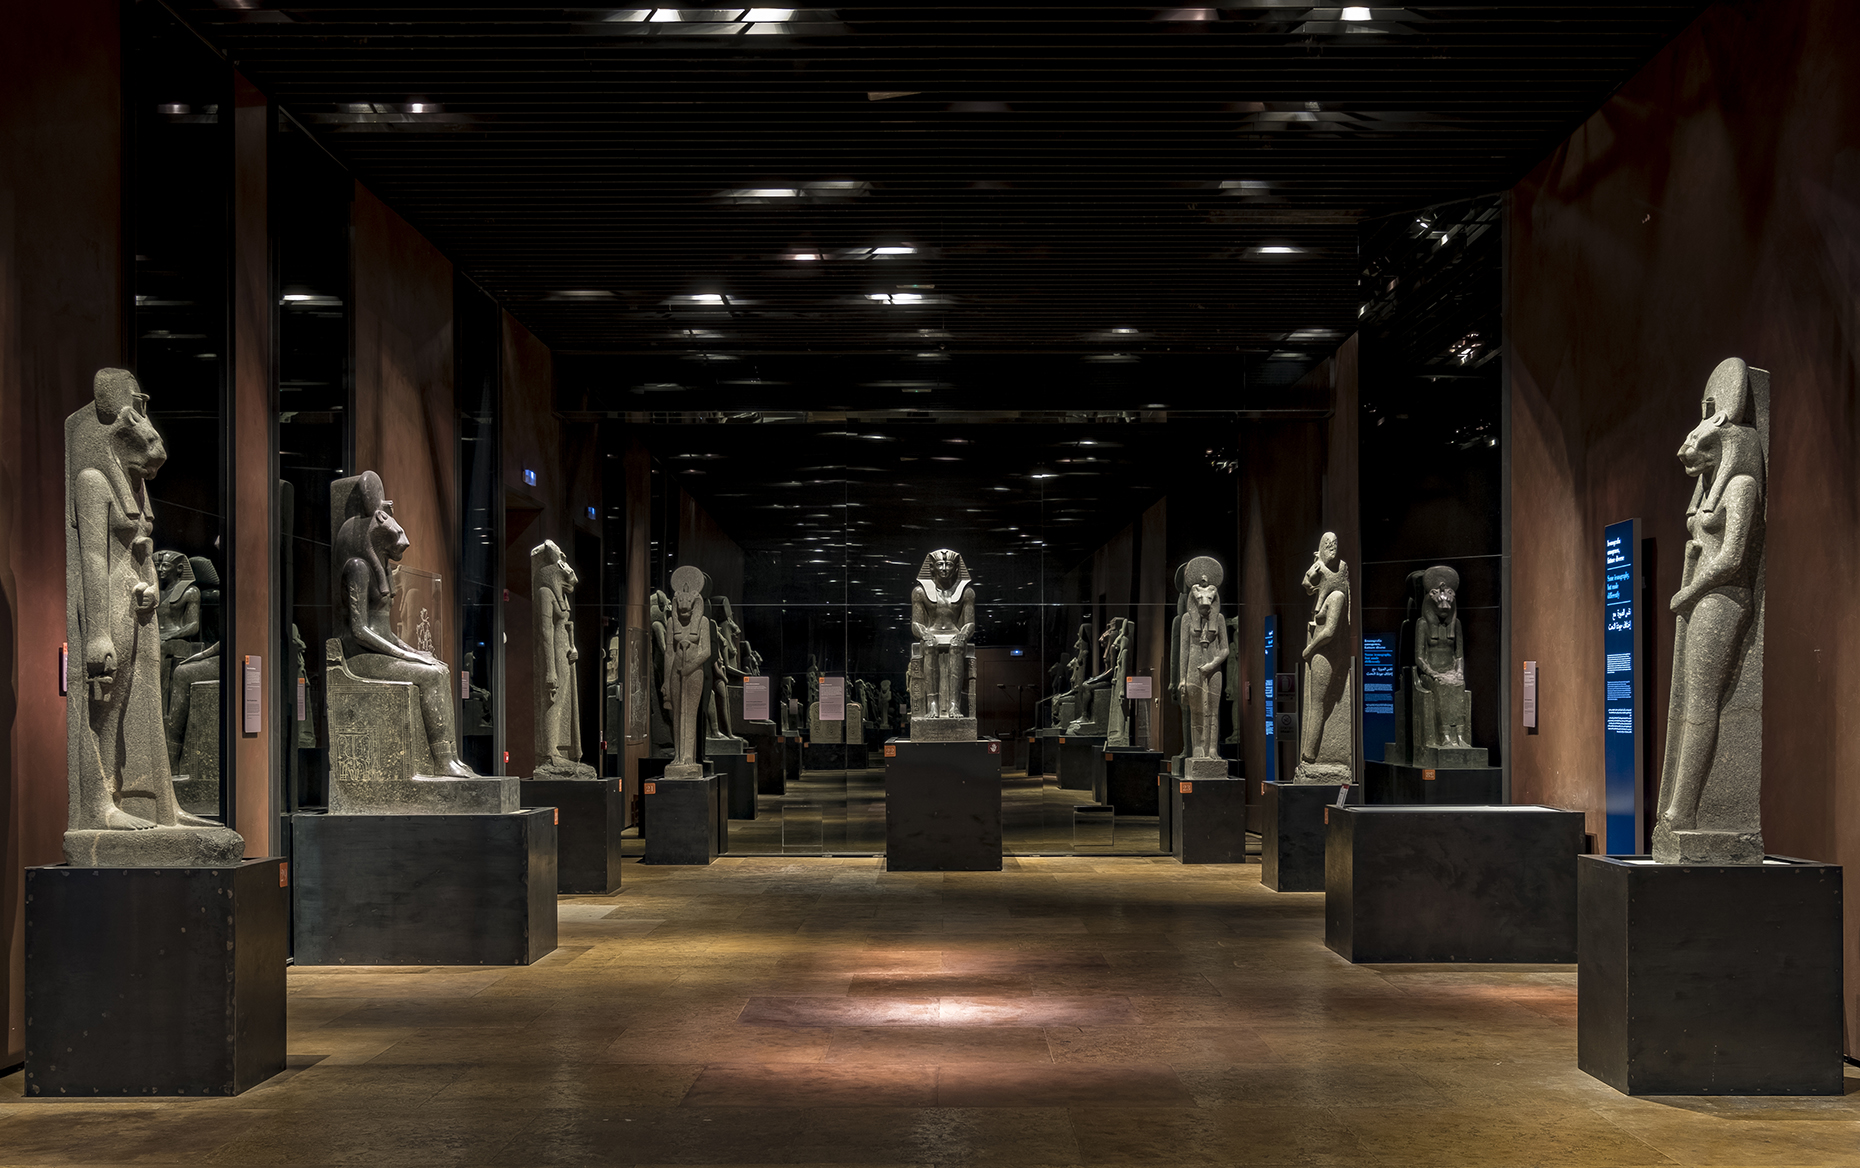 Exhibit at Museo Egizio